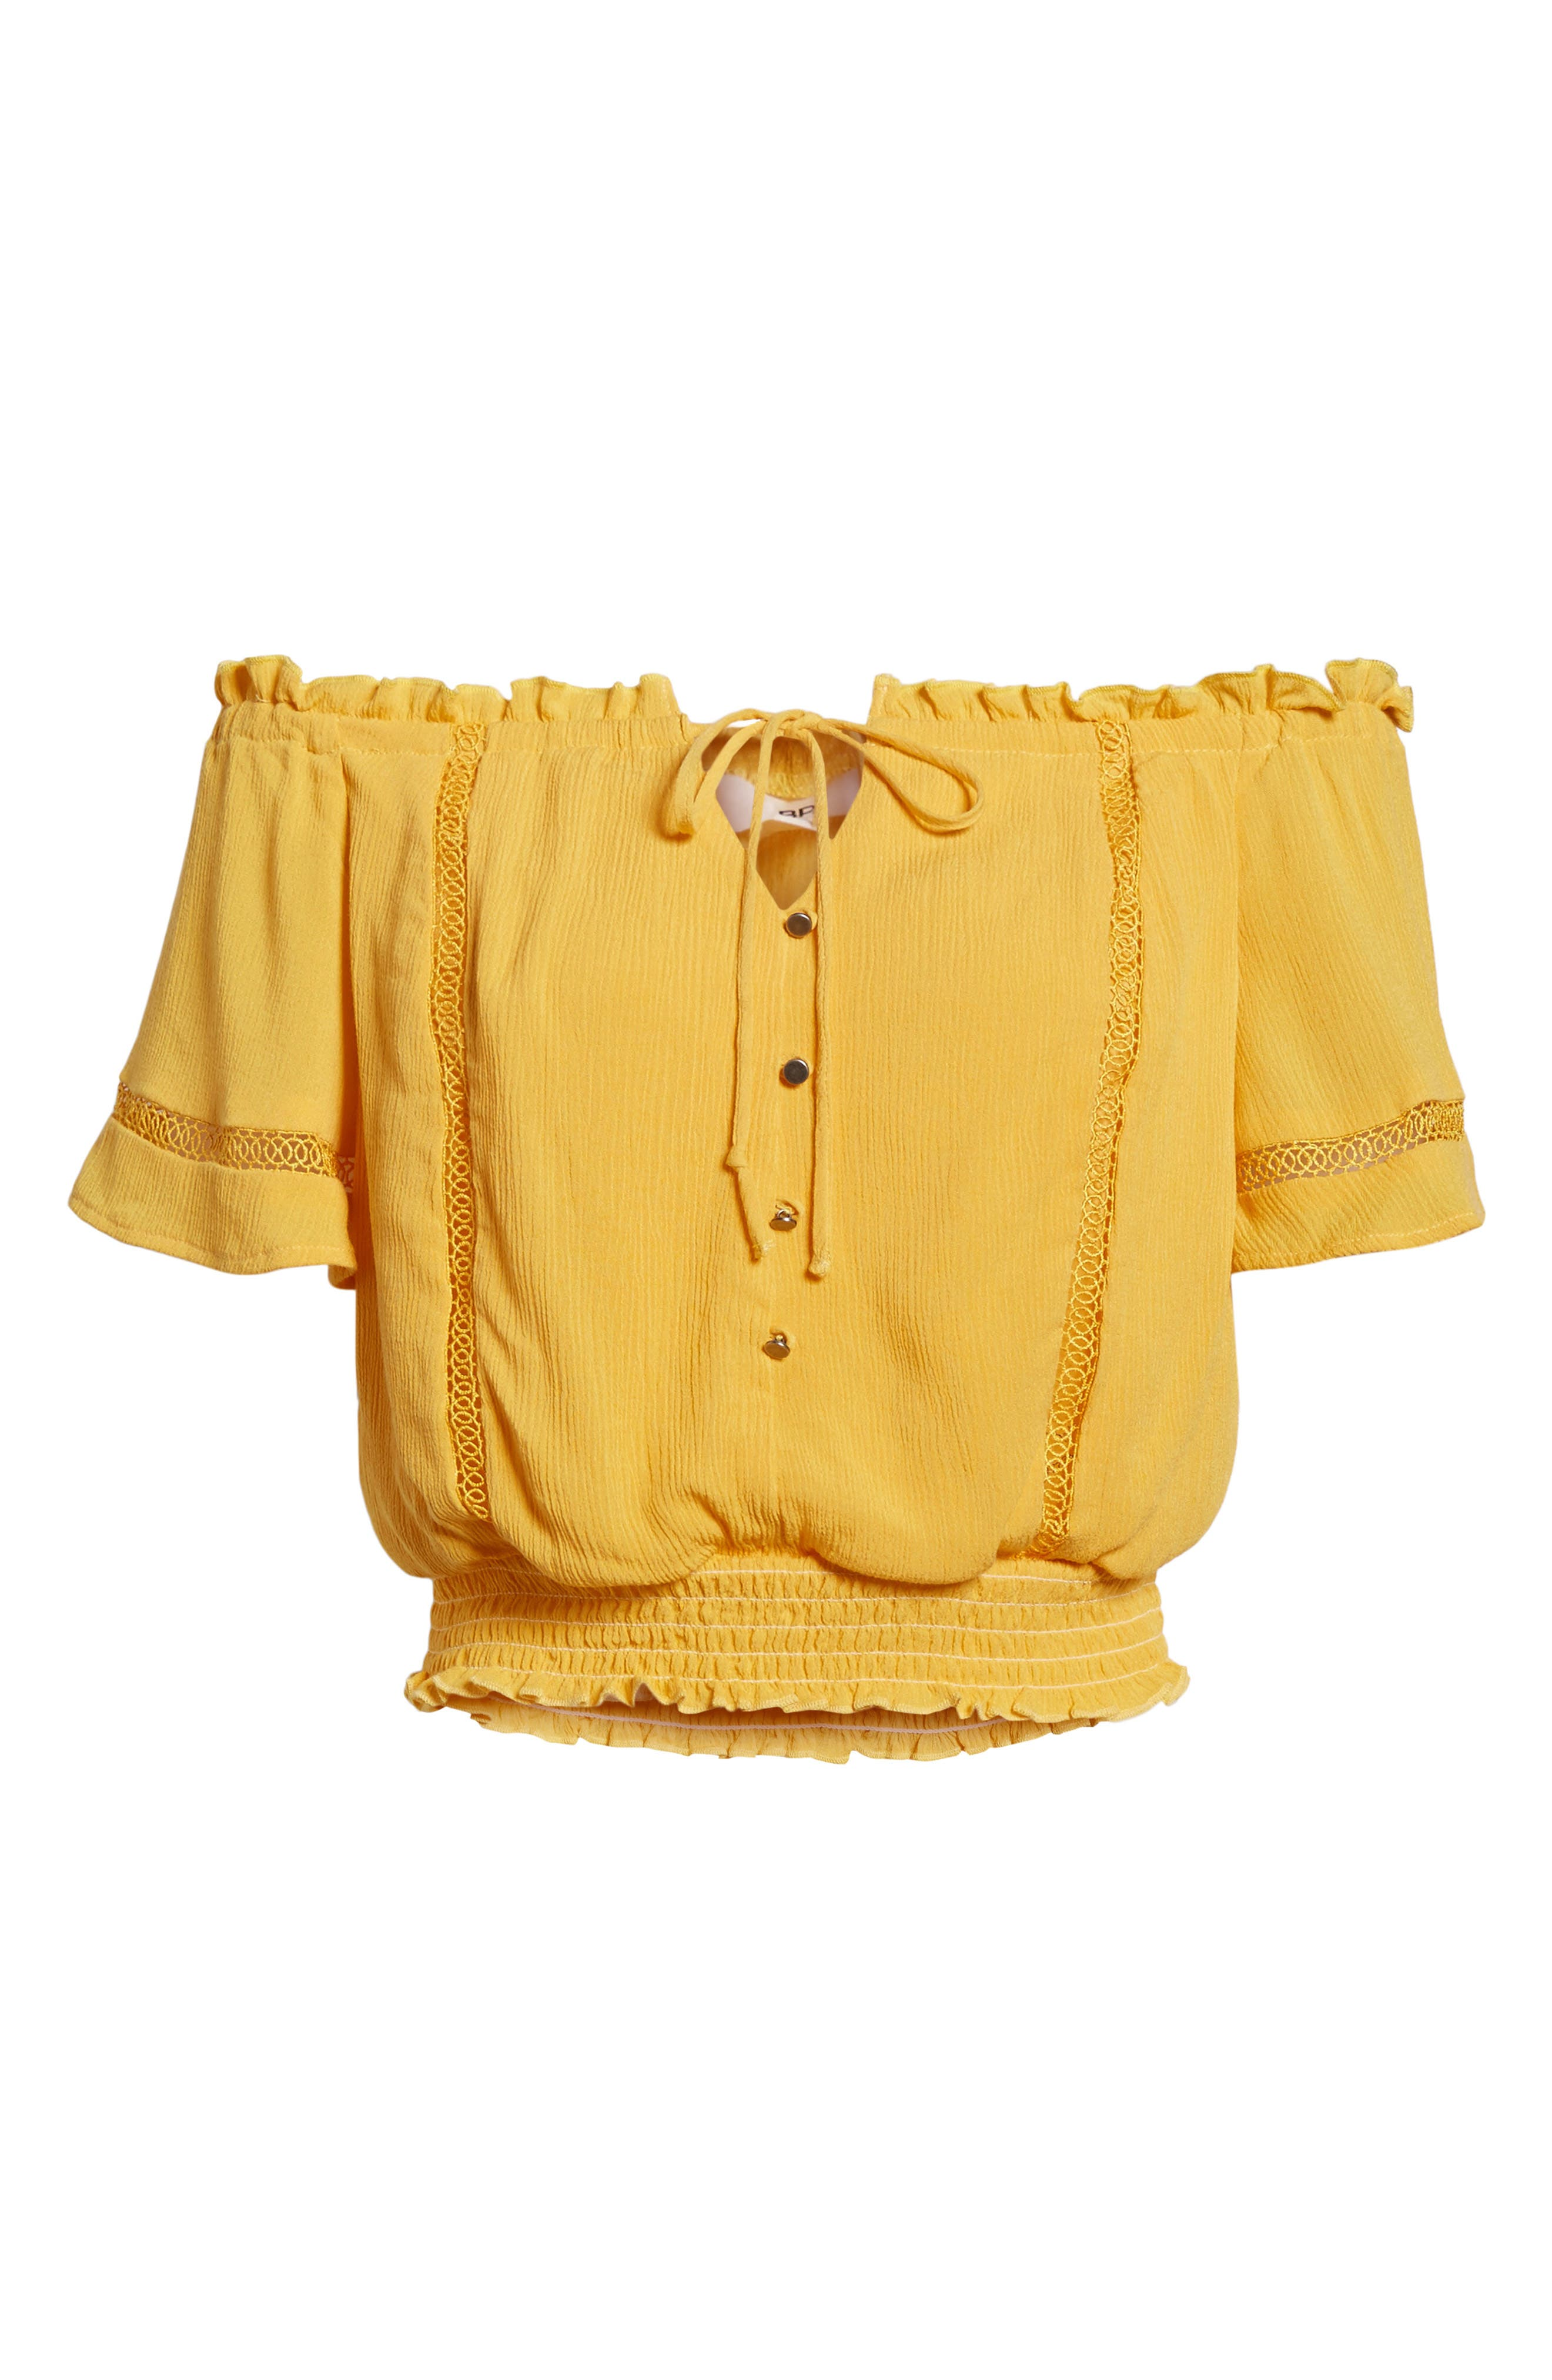 Off the Shoulder Crop Top,                             Alternate thumbnail 7, color,                             Yellow Sulphur